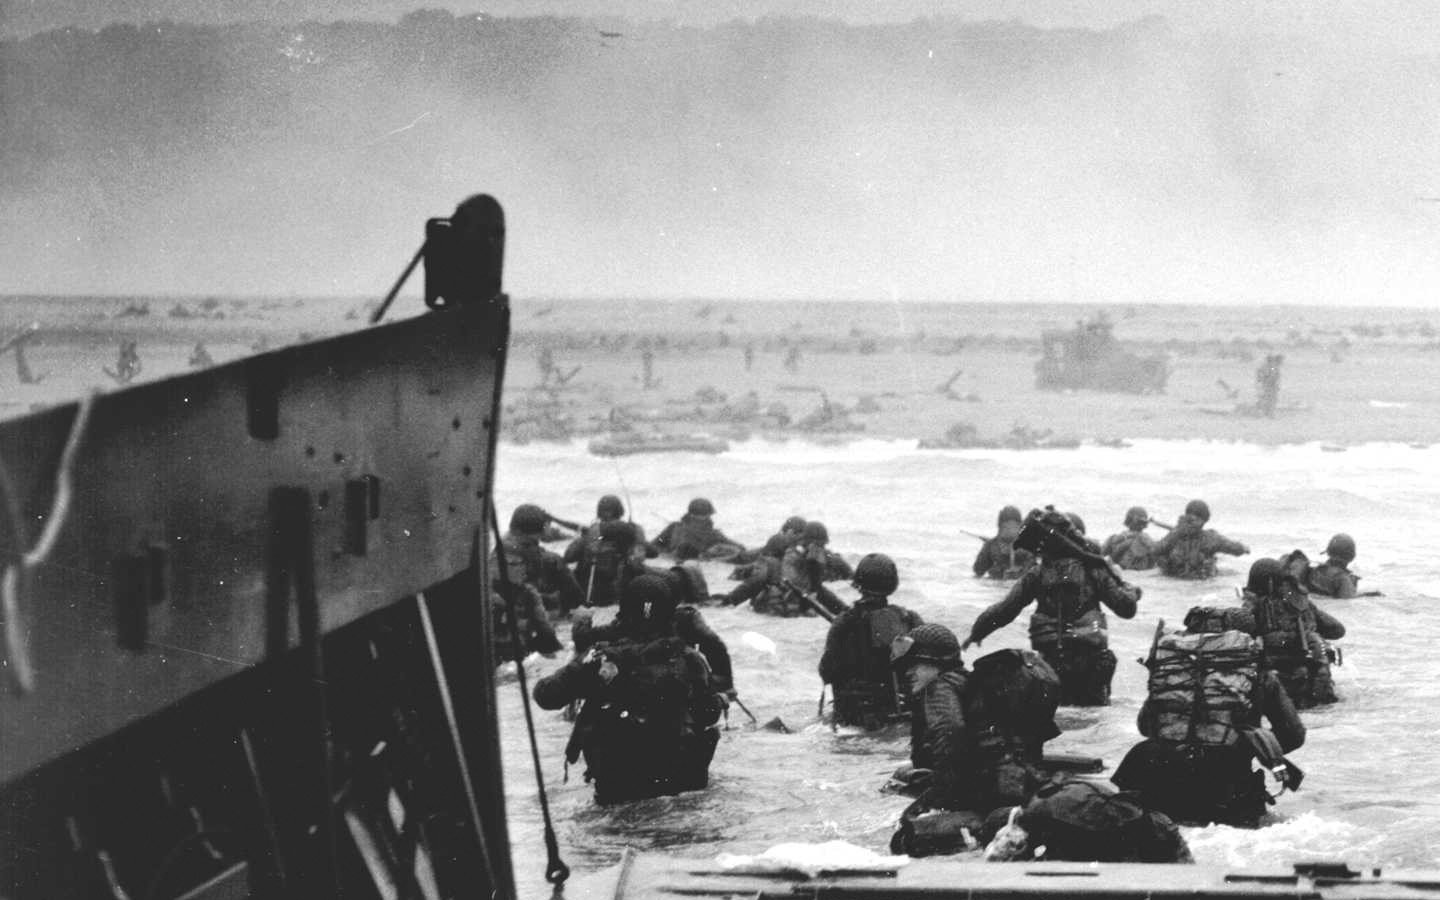 Soldiers American Normandy History Grayscale World War II D Day Troops 2 Beaches Wallpaper